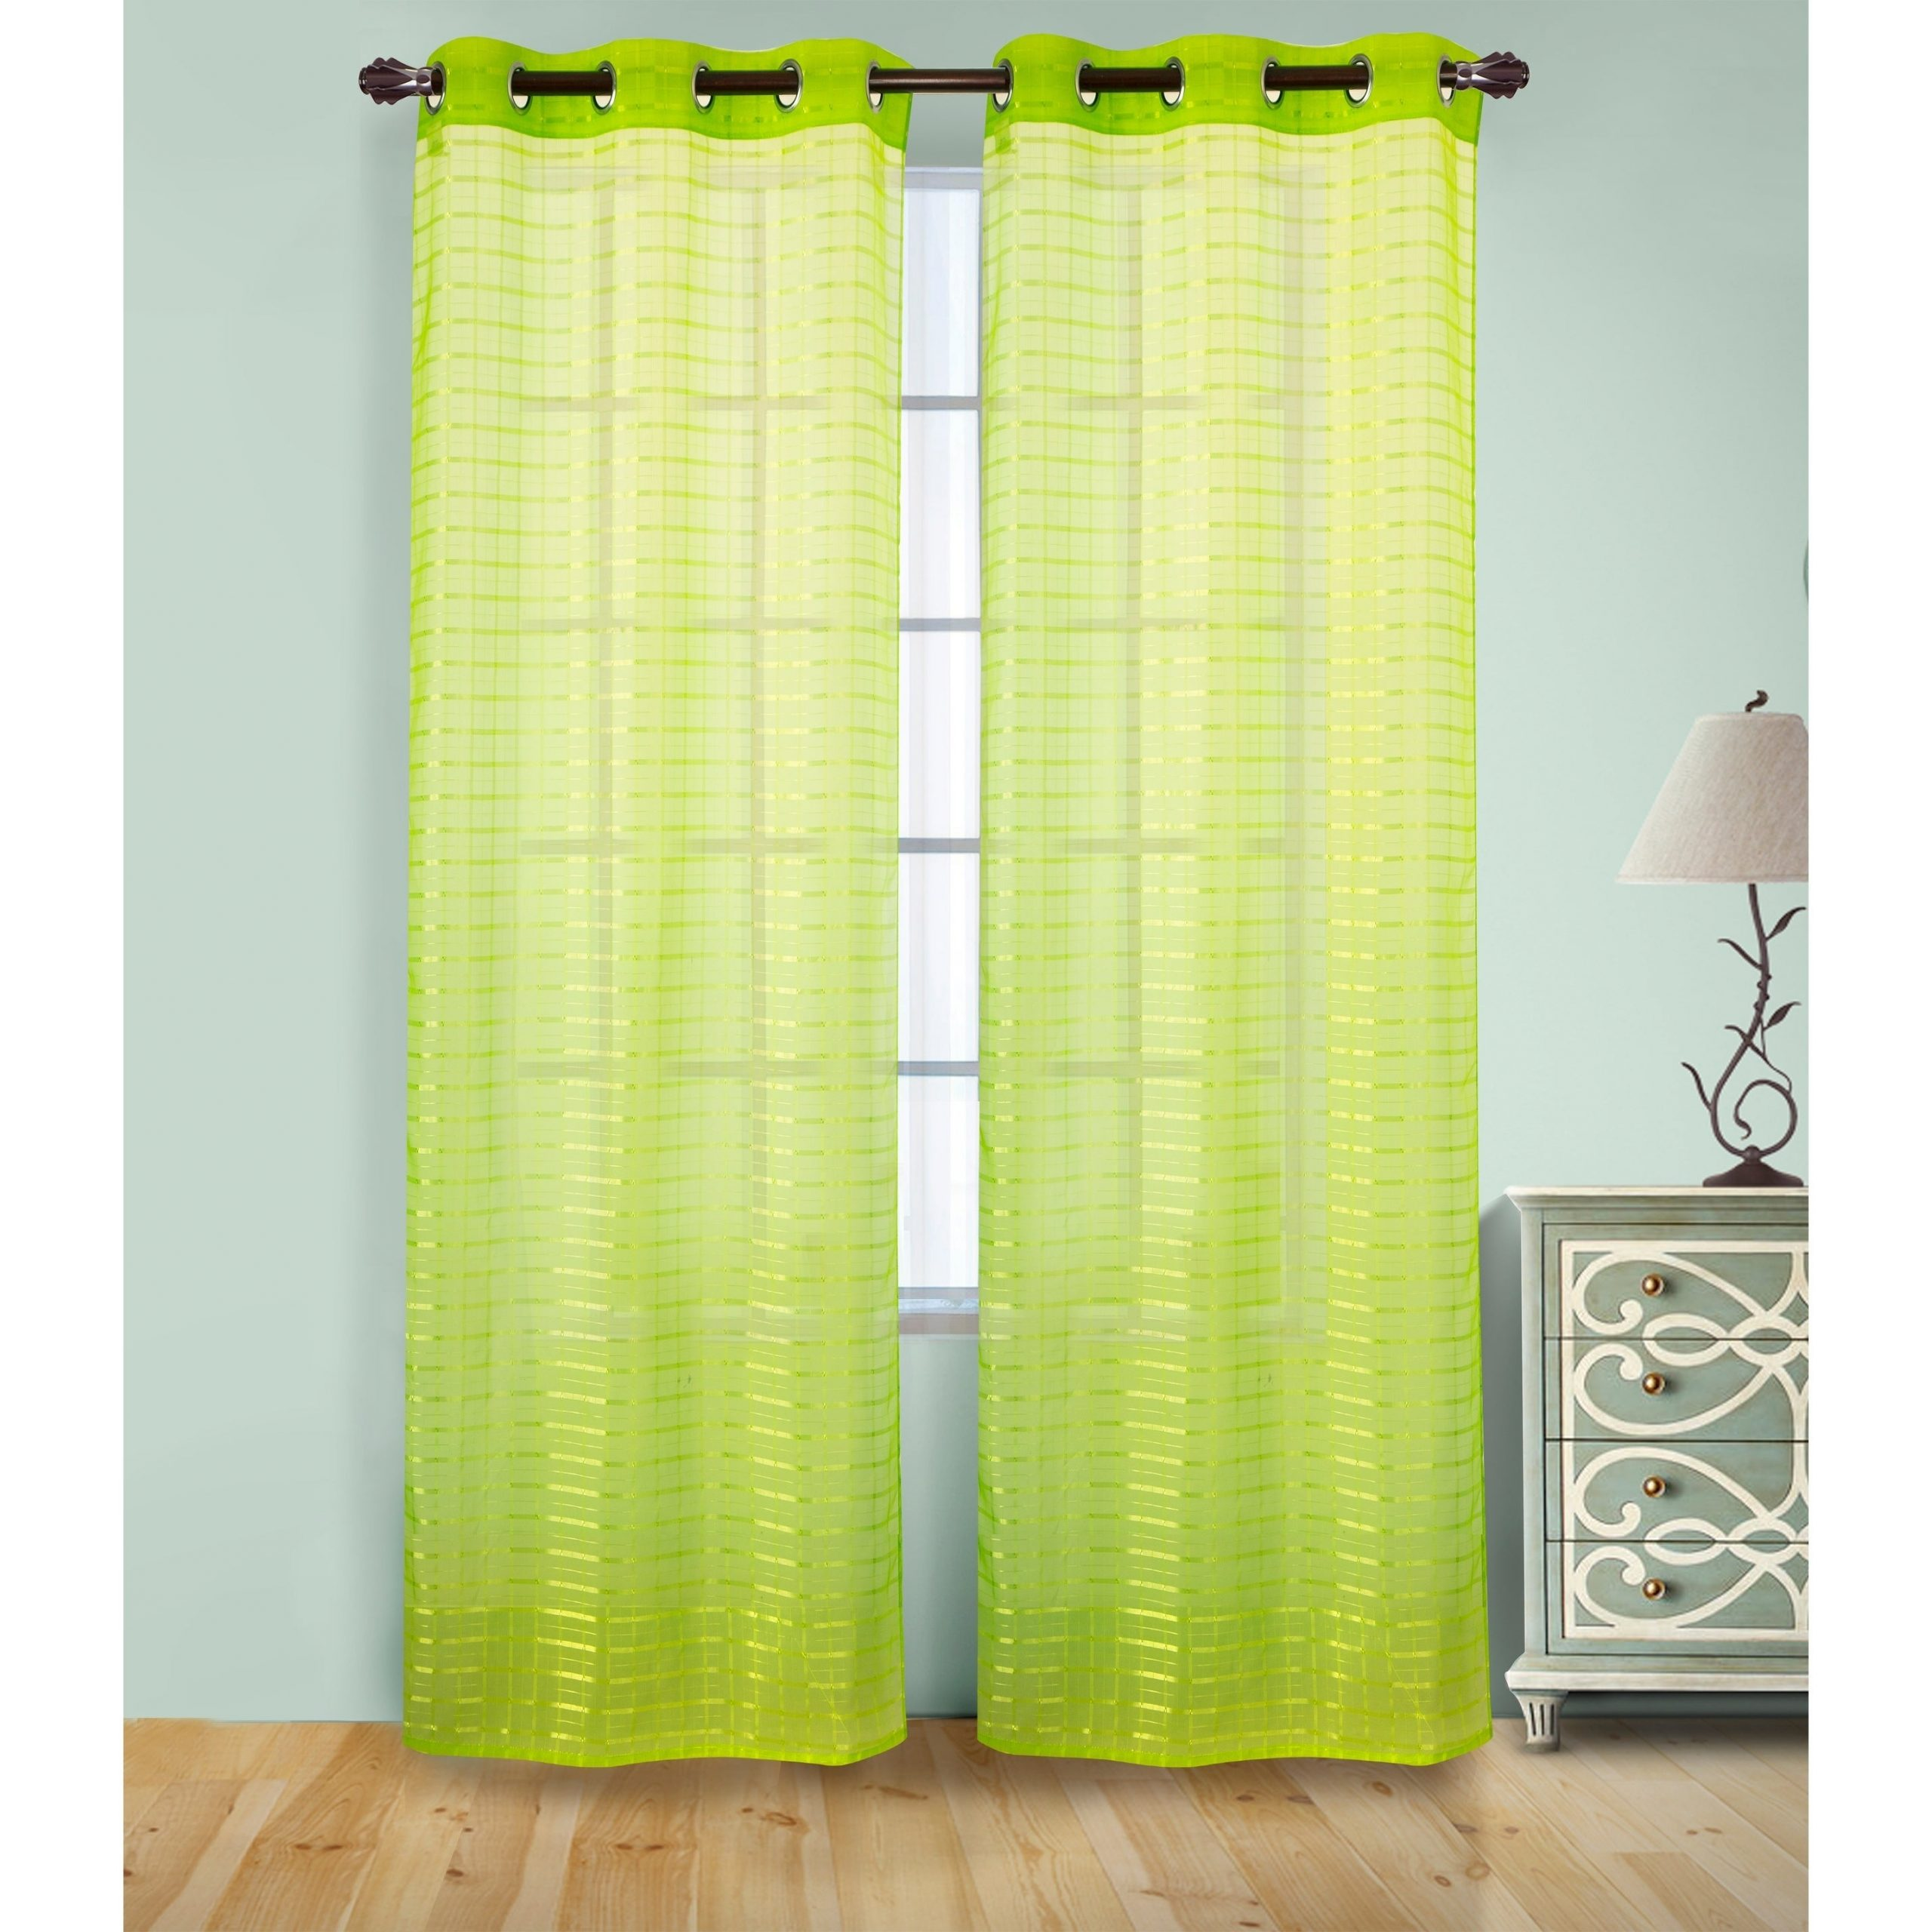 2021 Pairs To Go Victoria Voile Curtain Panel Pairs Pertaining To Rt Designer's Collection Wanda Box Voile 84 Inch Grommet Curtain Panel Pair – (2x) 38 X 84 In (View 13 of 20)